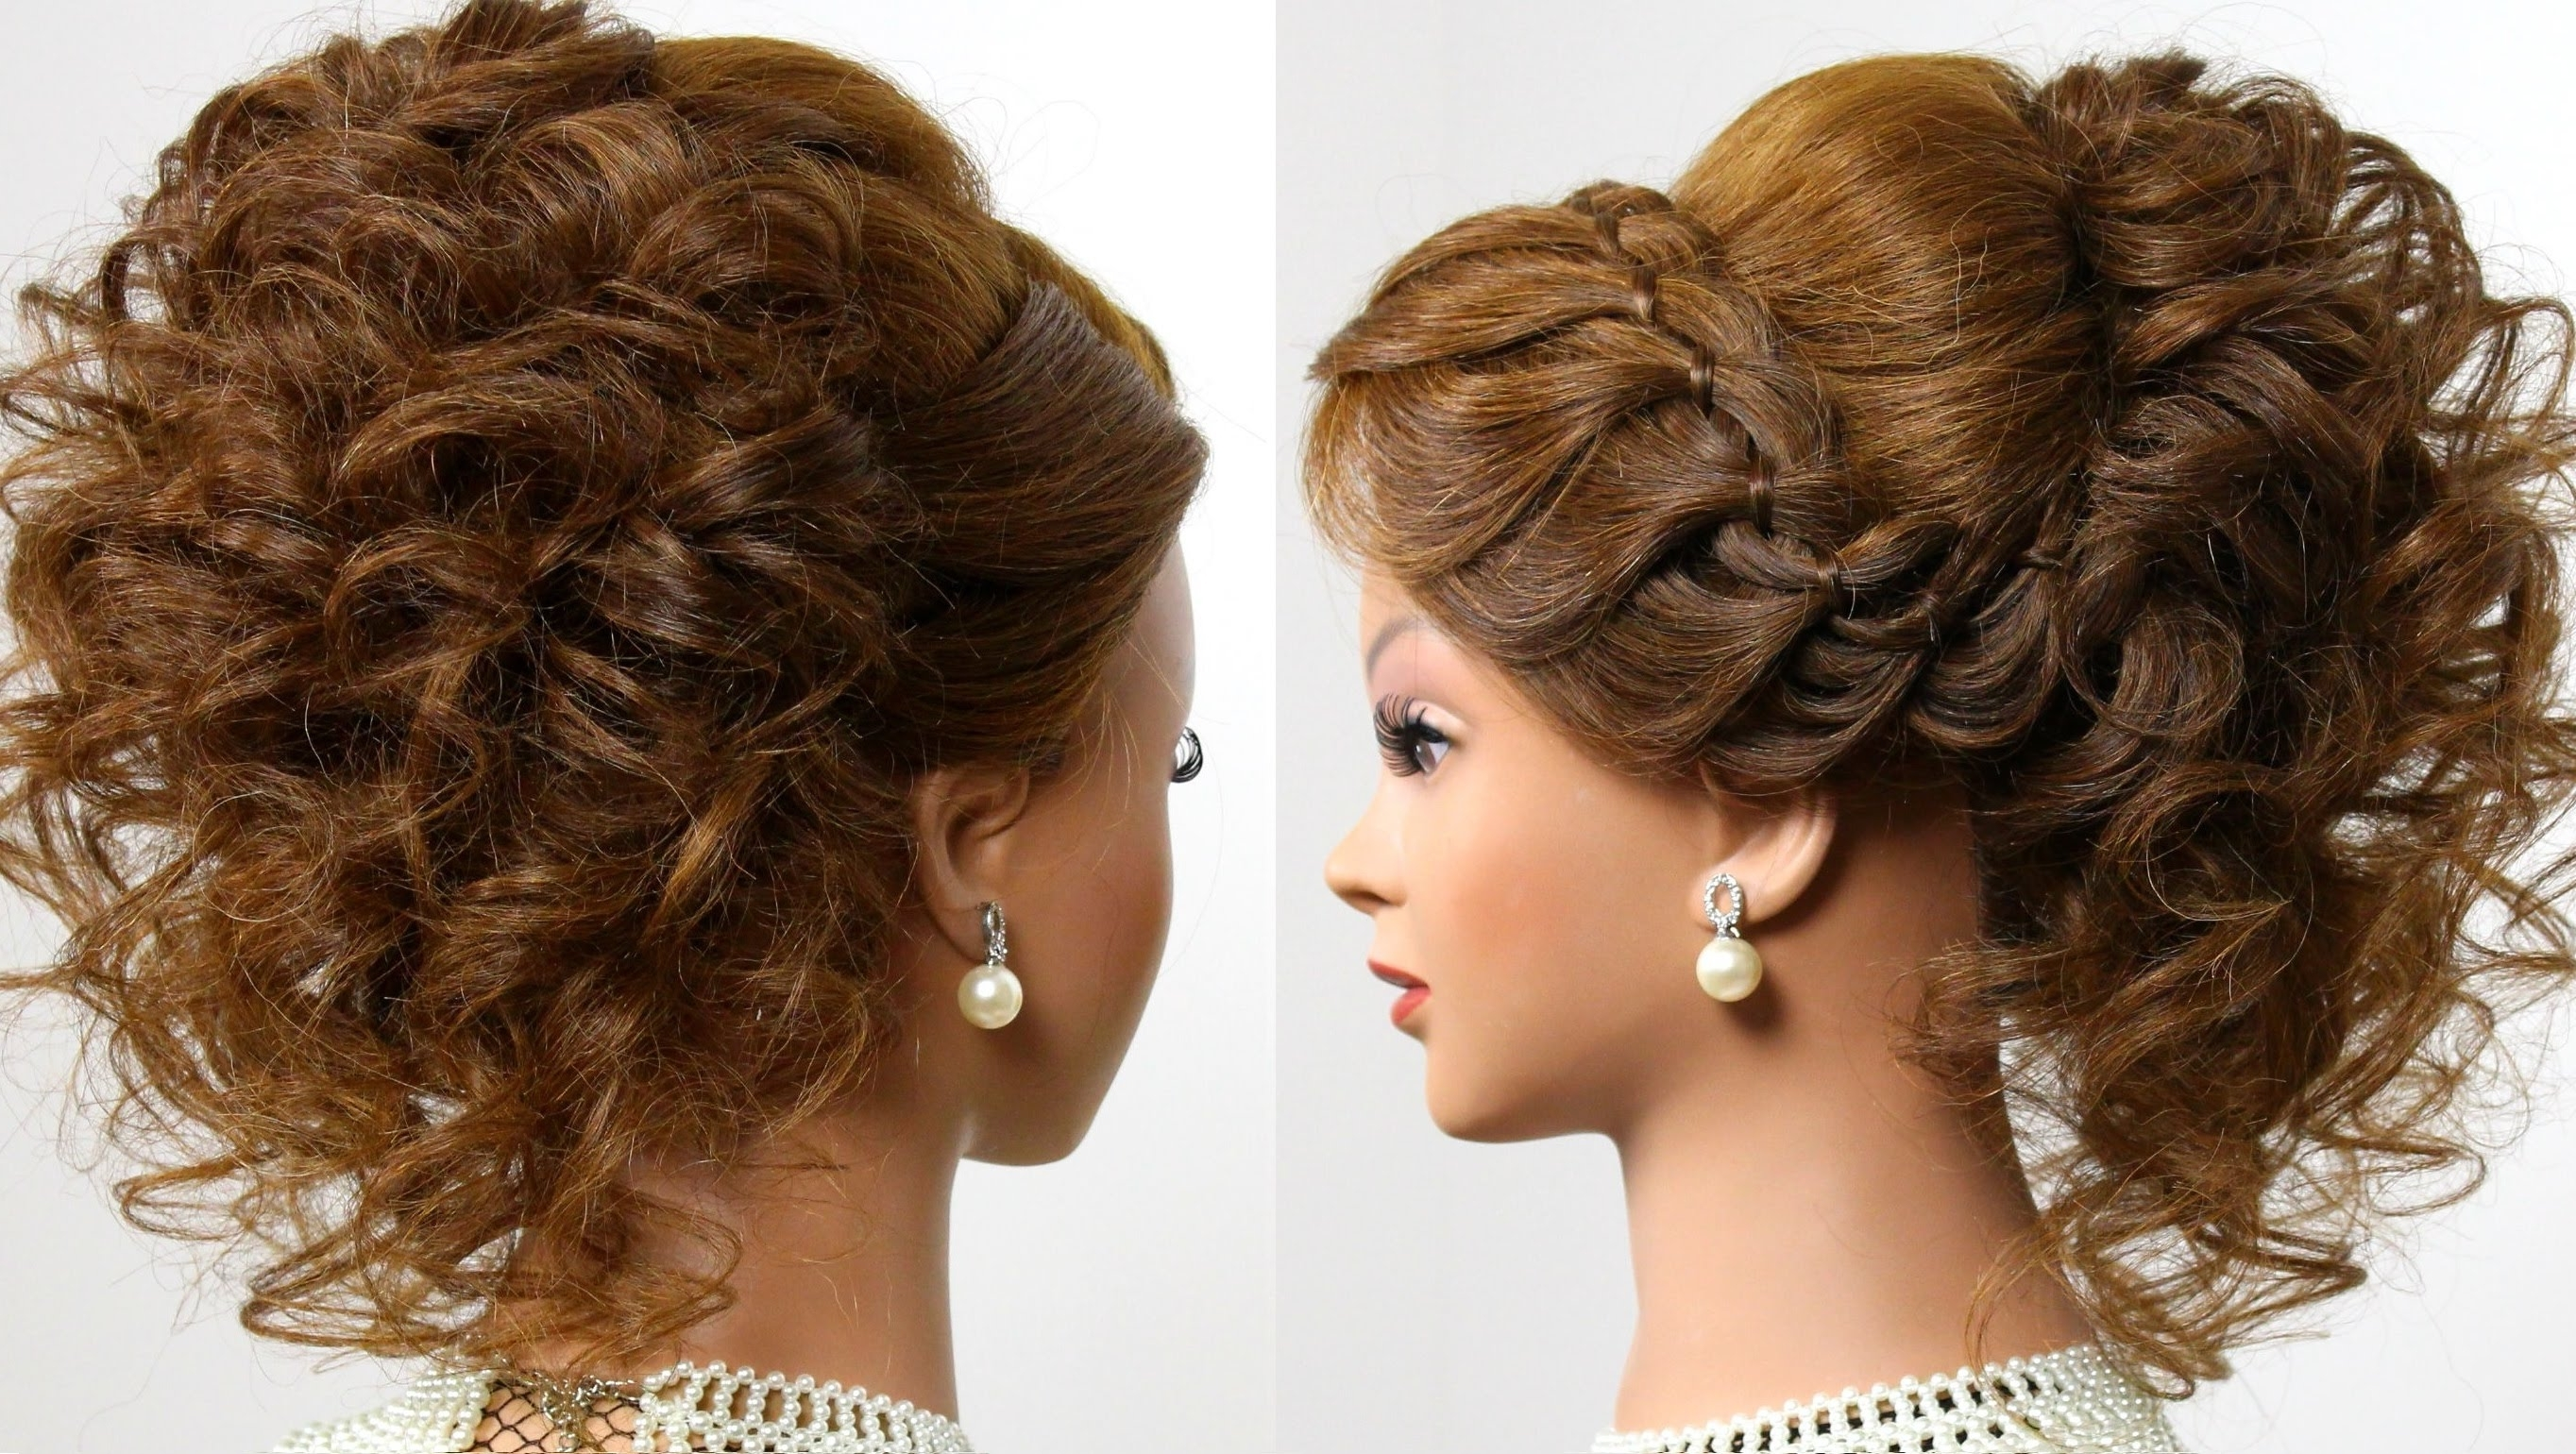 Beautiful Easy Wedding Hairstyles For Short Hair Photos – Styles With Bridesmaid Hairstyles Updos For Short Hair (View 2 of 15)